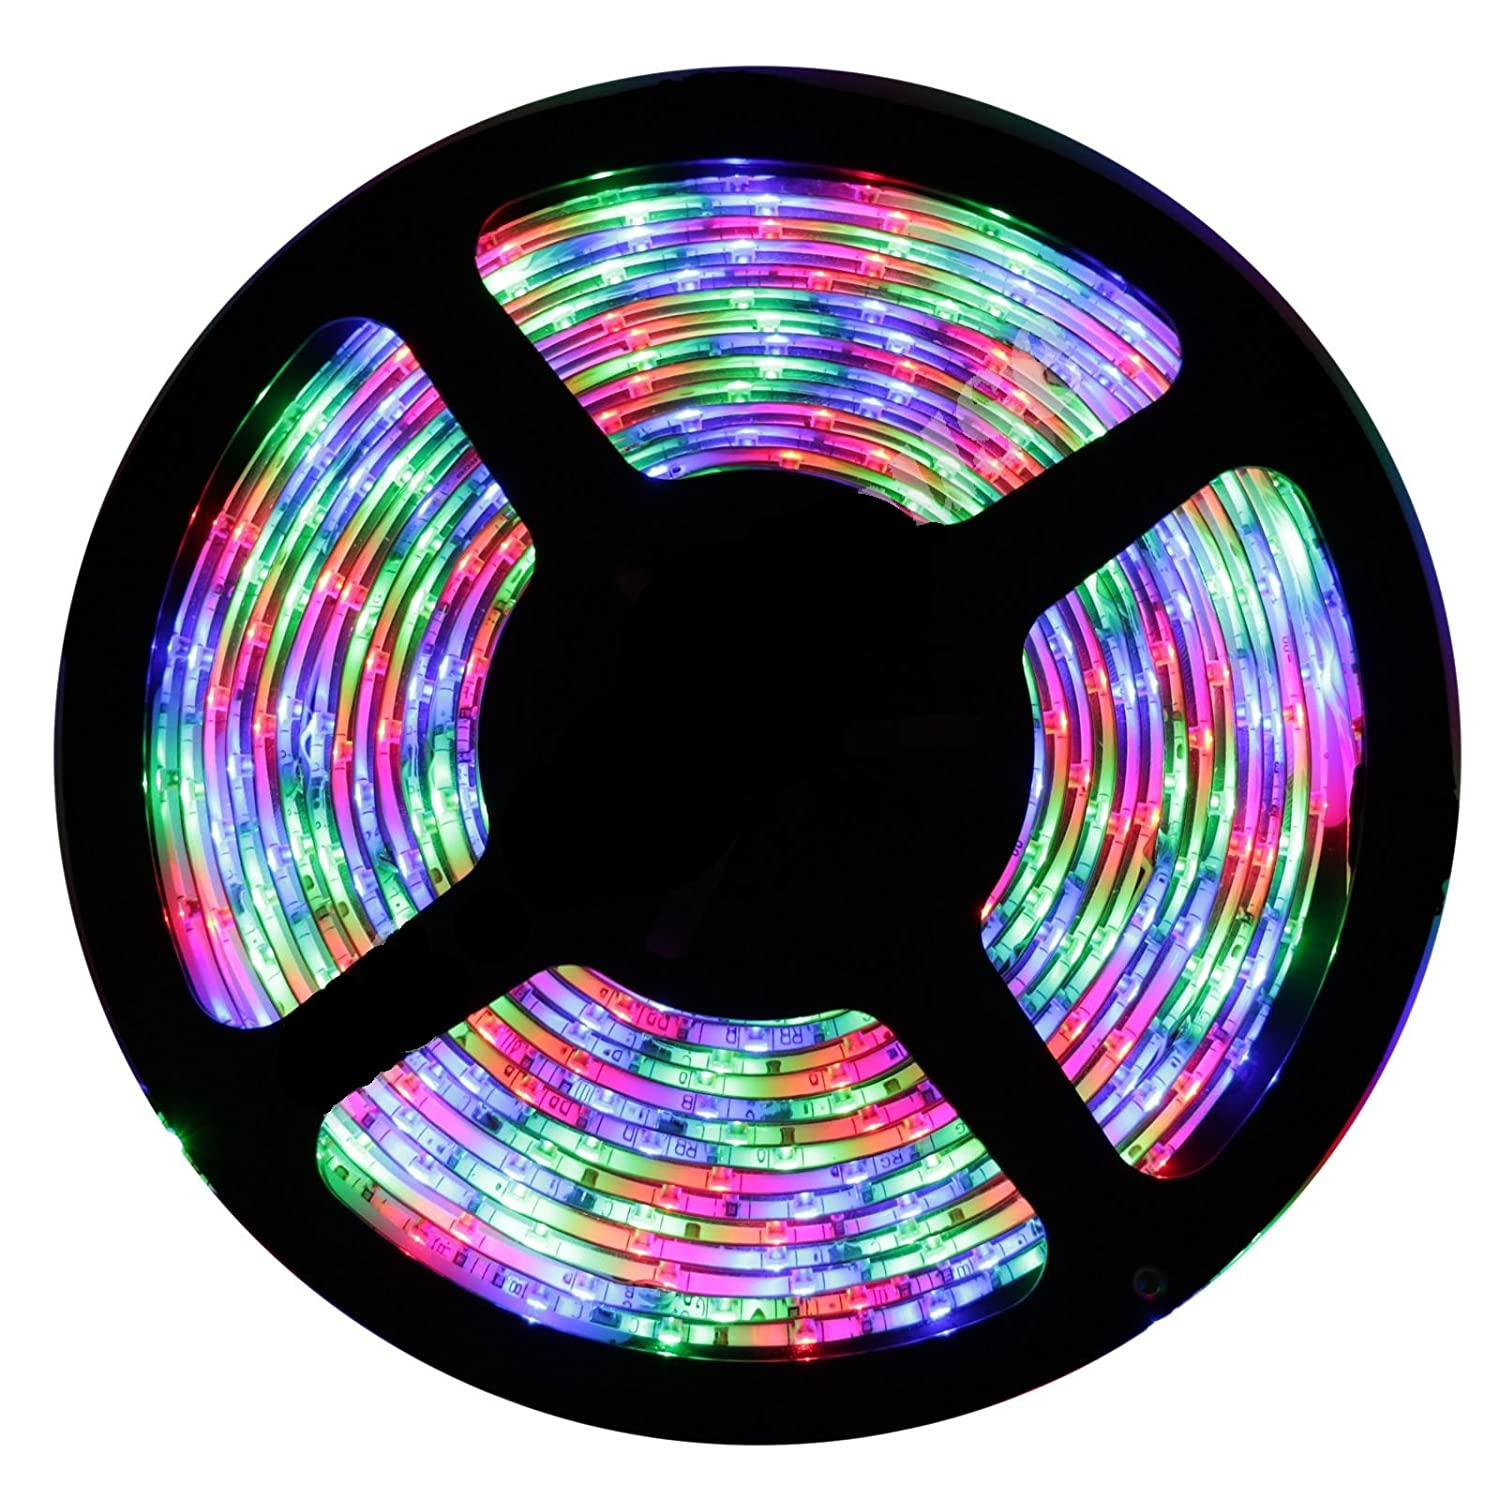 Buy non waterproof smd 3528 led strip lights 5 meter dc 12v buy non waterproof smd 3528 led strip lights 5 meter dc 12v adapter led dimmer controller multicolour rgb online at low prices in india aloadofball Image collections